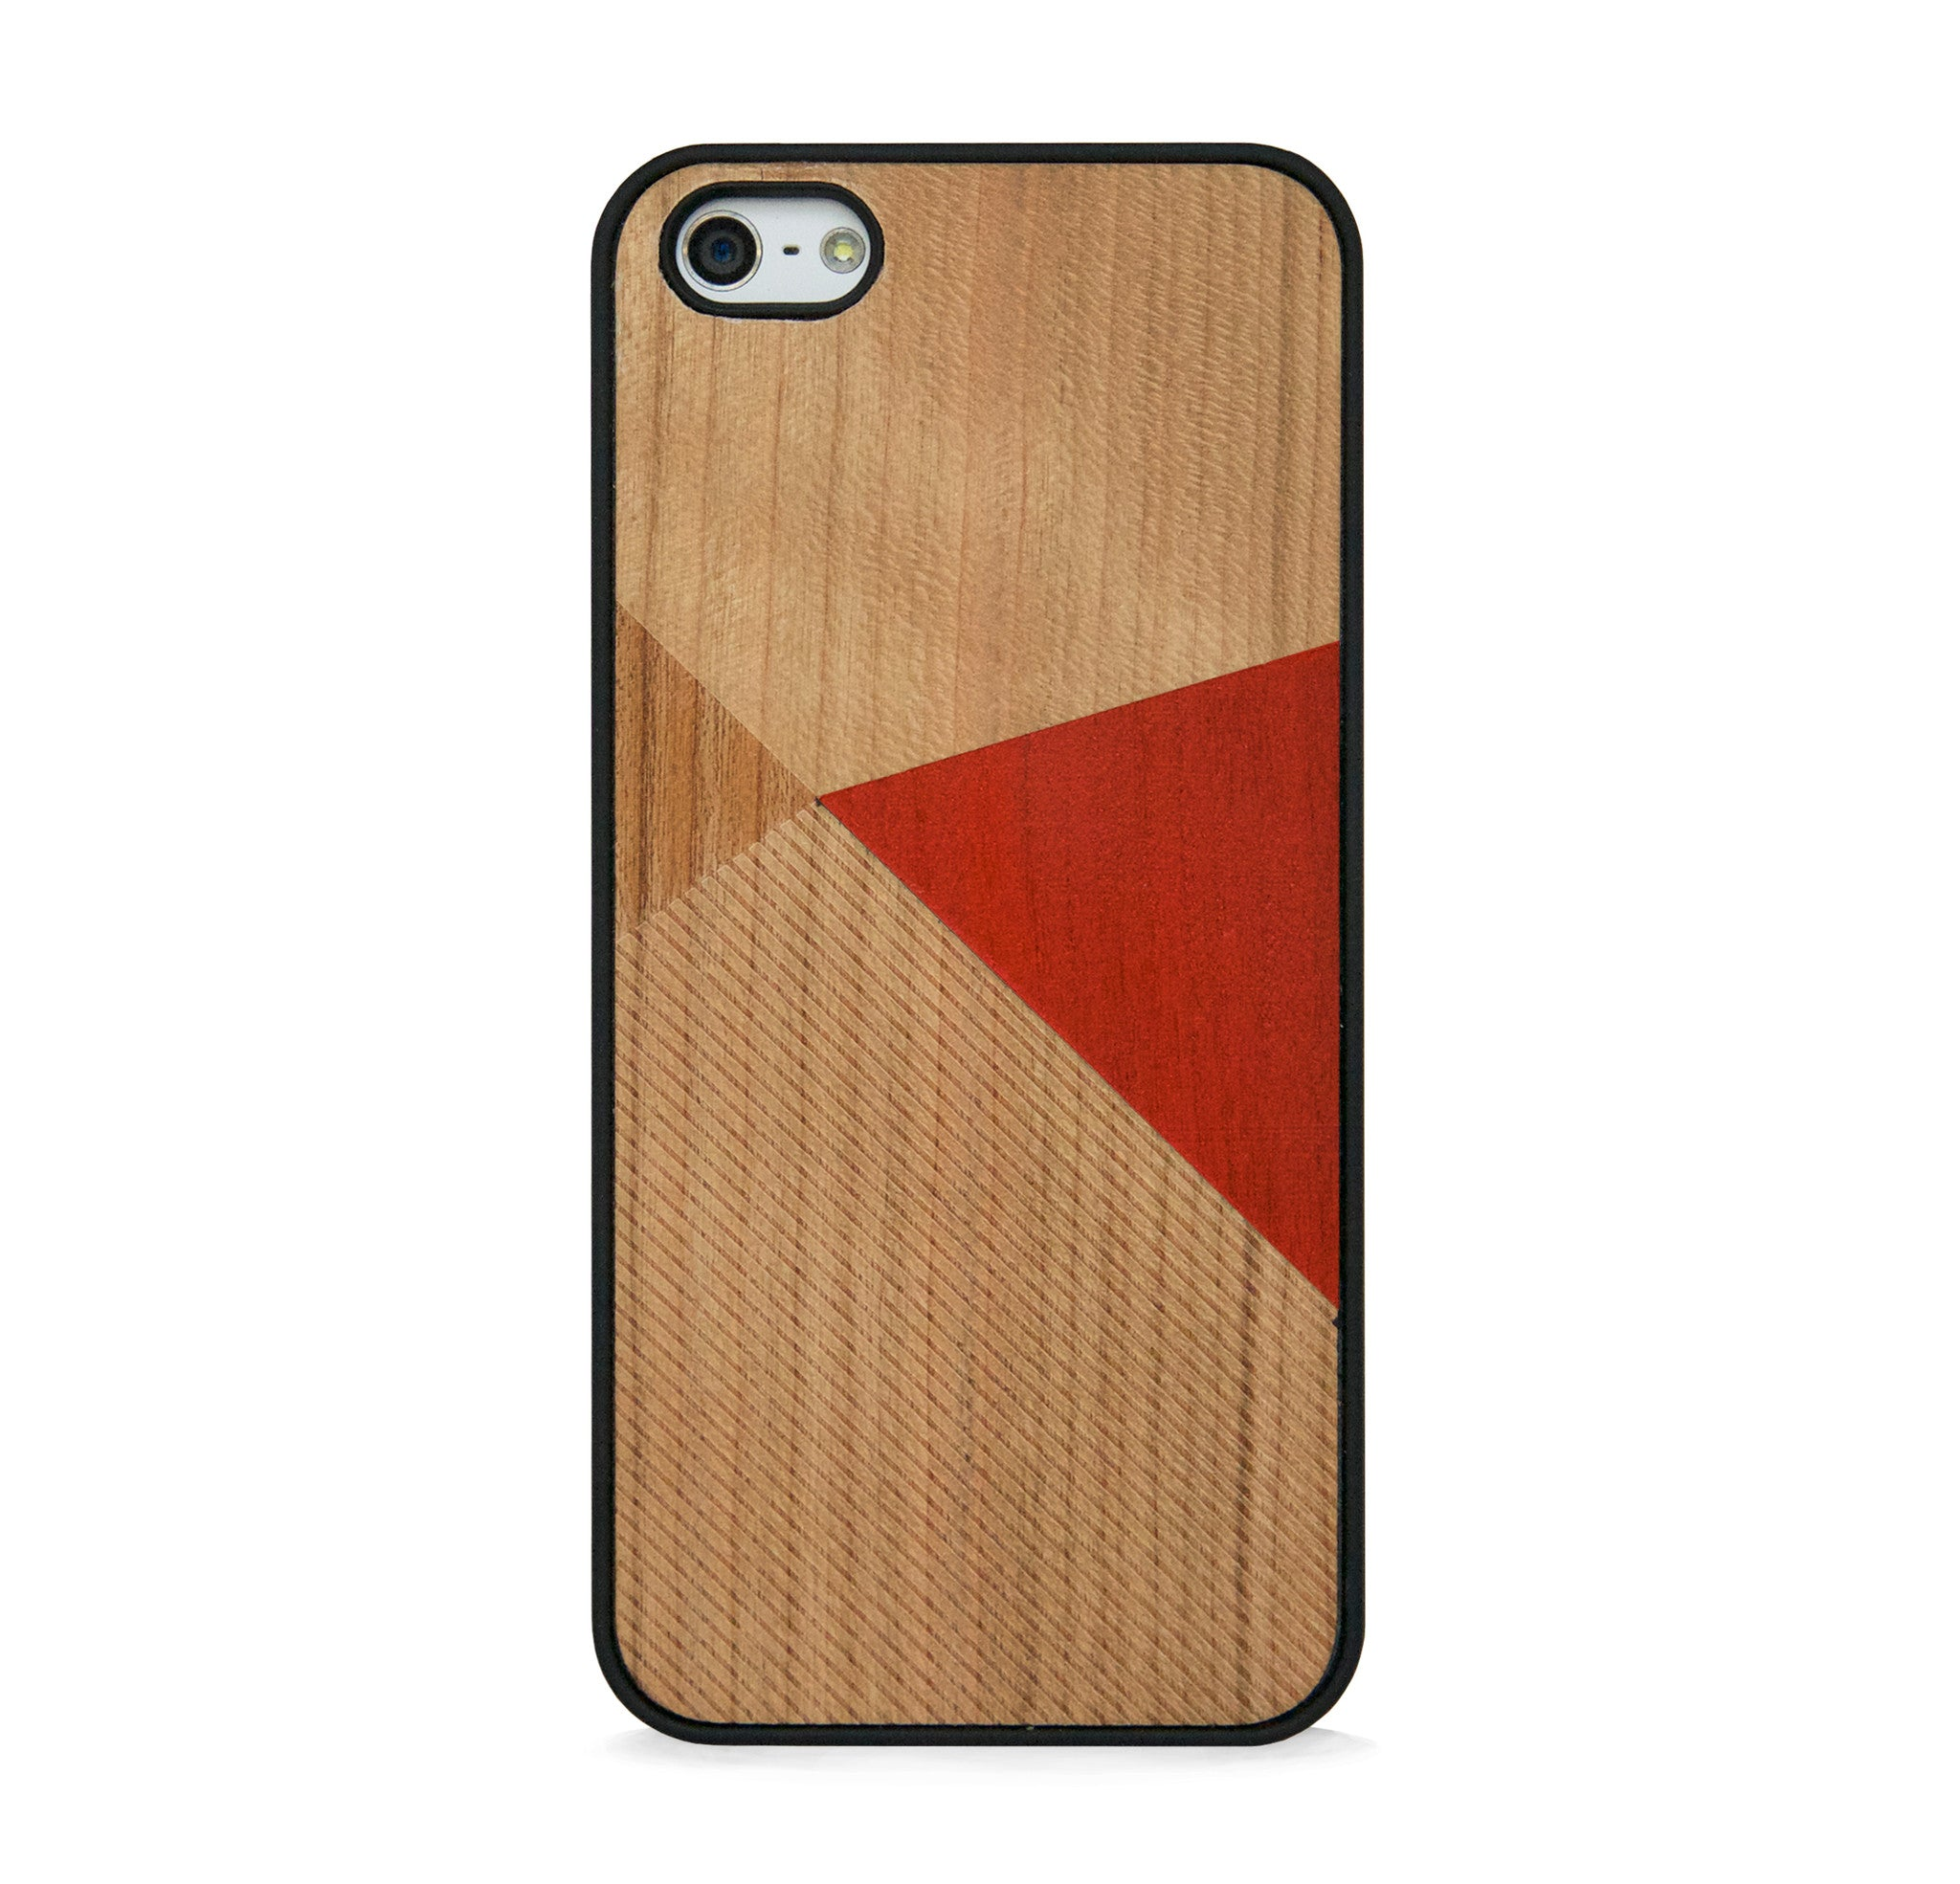 *WOOD CASE COLOR BLOCK ORANGE FOR IPHONE 5/5s